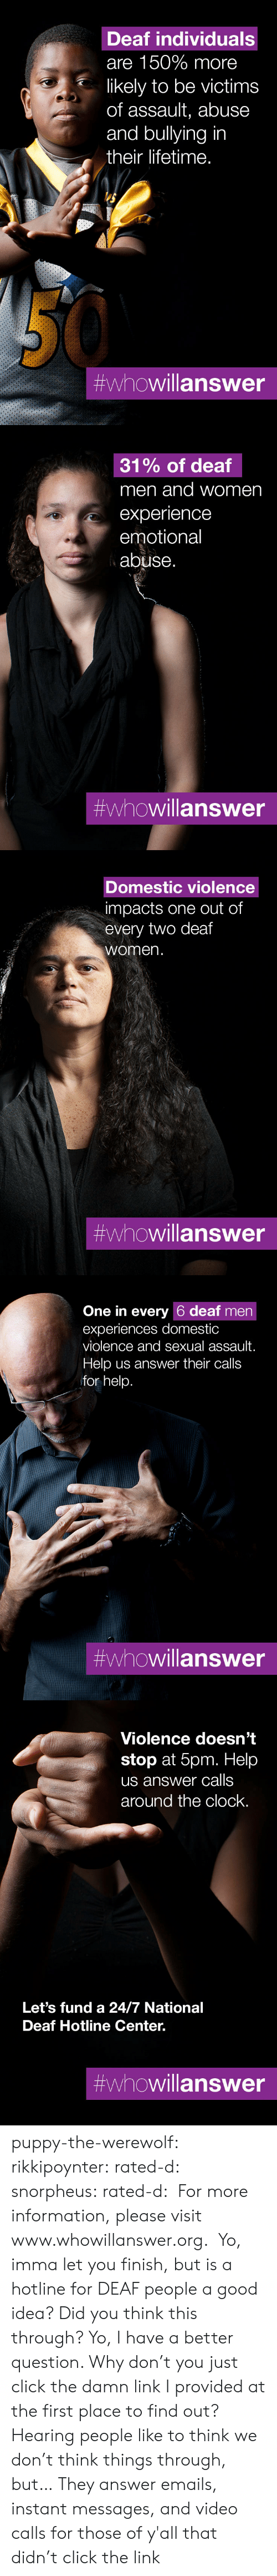 Domestic Violence: Deaf individuals  are 150% more  likely to be victims  of assault, abuse  and bullying in  their lifetime.  #whowillanswer   31% of deaf  men and women  experience  emotional  abuse.  #whowillanswer   Domestic violence  impacts one out of  every two deaf  women.  #whowillanswer   One in every 6 deaf men  experiences domestic  violence and sexual assault.  Help us answer their calls  for help.  #whowillanswer   Violence doesn't  stop at 5pm. Help  us answer calls  around the clock.  Let's fund a 24/7 National  Deaf Hotline Center.  puppy-the-werewolf: rikkipoynter:  rated-d:  snorpheus:  rated-d:   For more information, please visit www.whowillanswer.org.   Yo, imma let you finish, but is a hotline for DEAF people a good idea? Did you think this through?  Yo, I have a better question. Why don't you just click the damn link I provided at the first place to find out?     Hearing people like to think we don't think things through, but…   They answer emails, instant messages, and video calls for those of y'all that didn't click the link